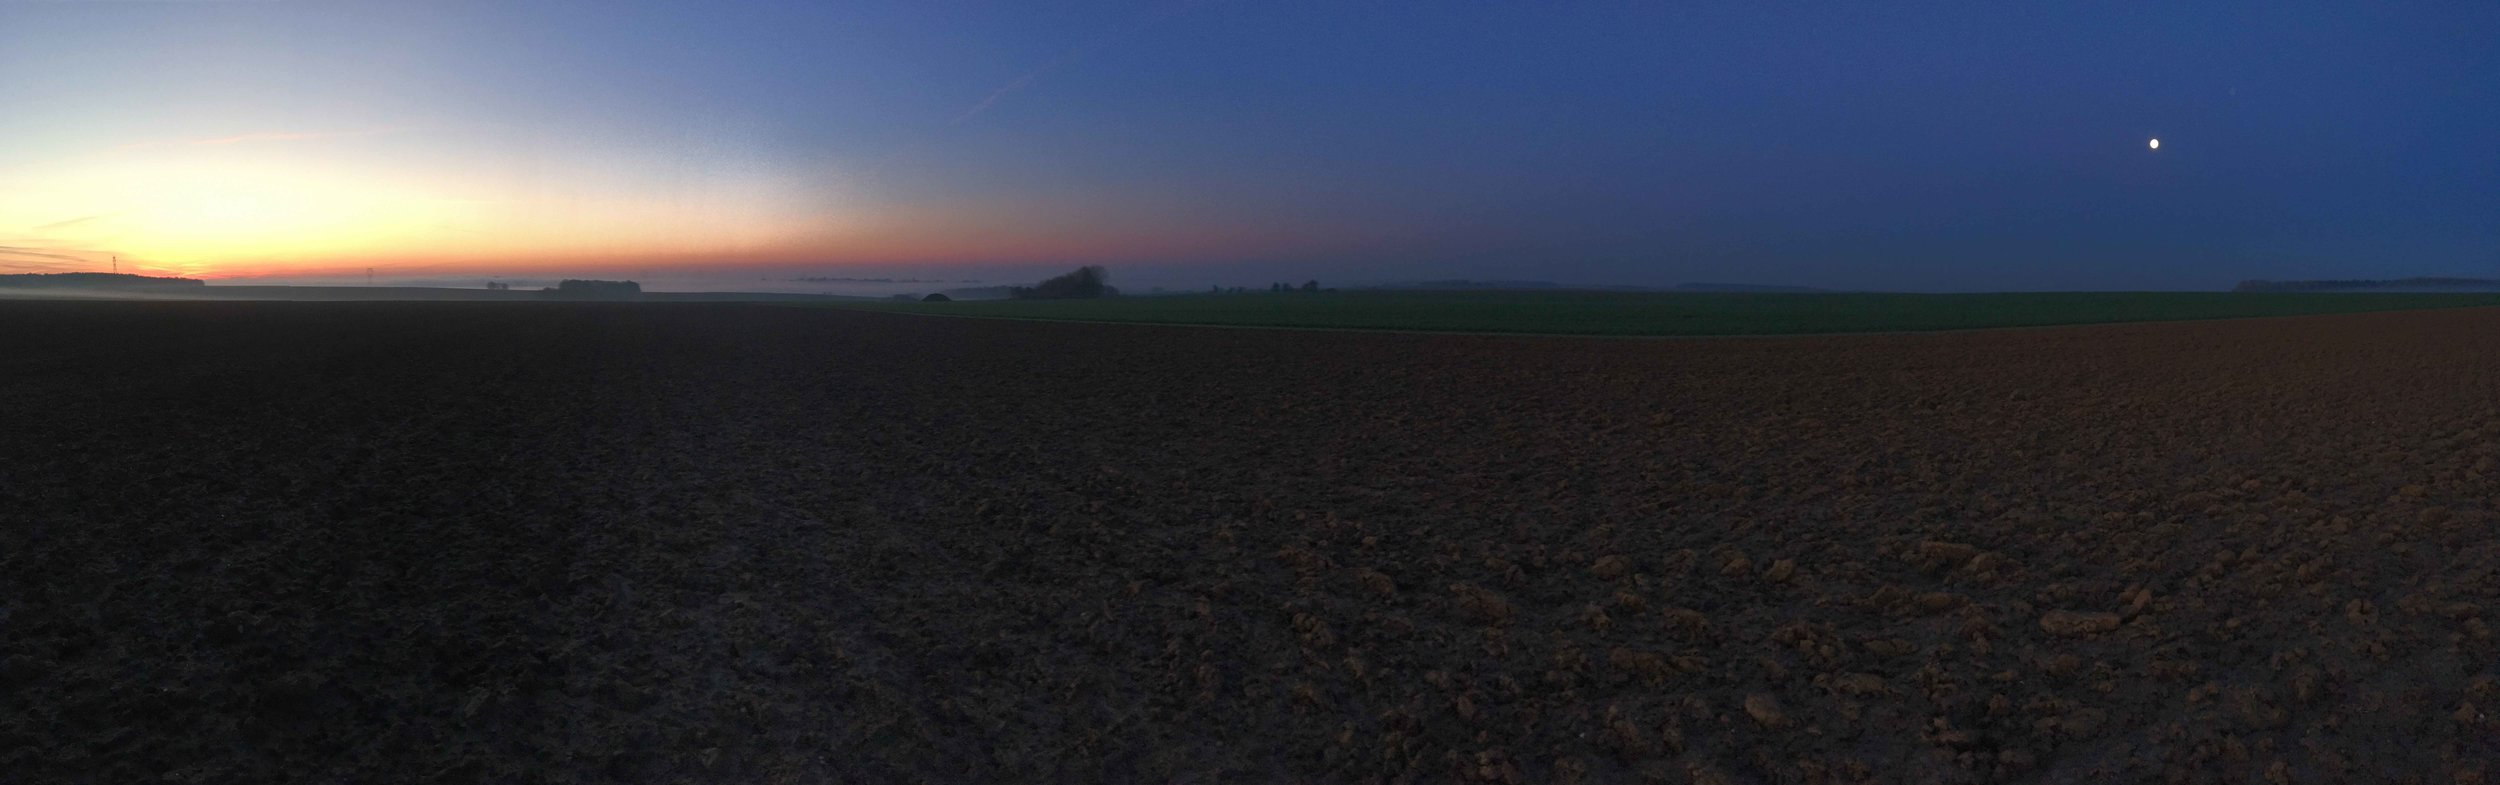 Somme dawn 419 compressed.jpg